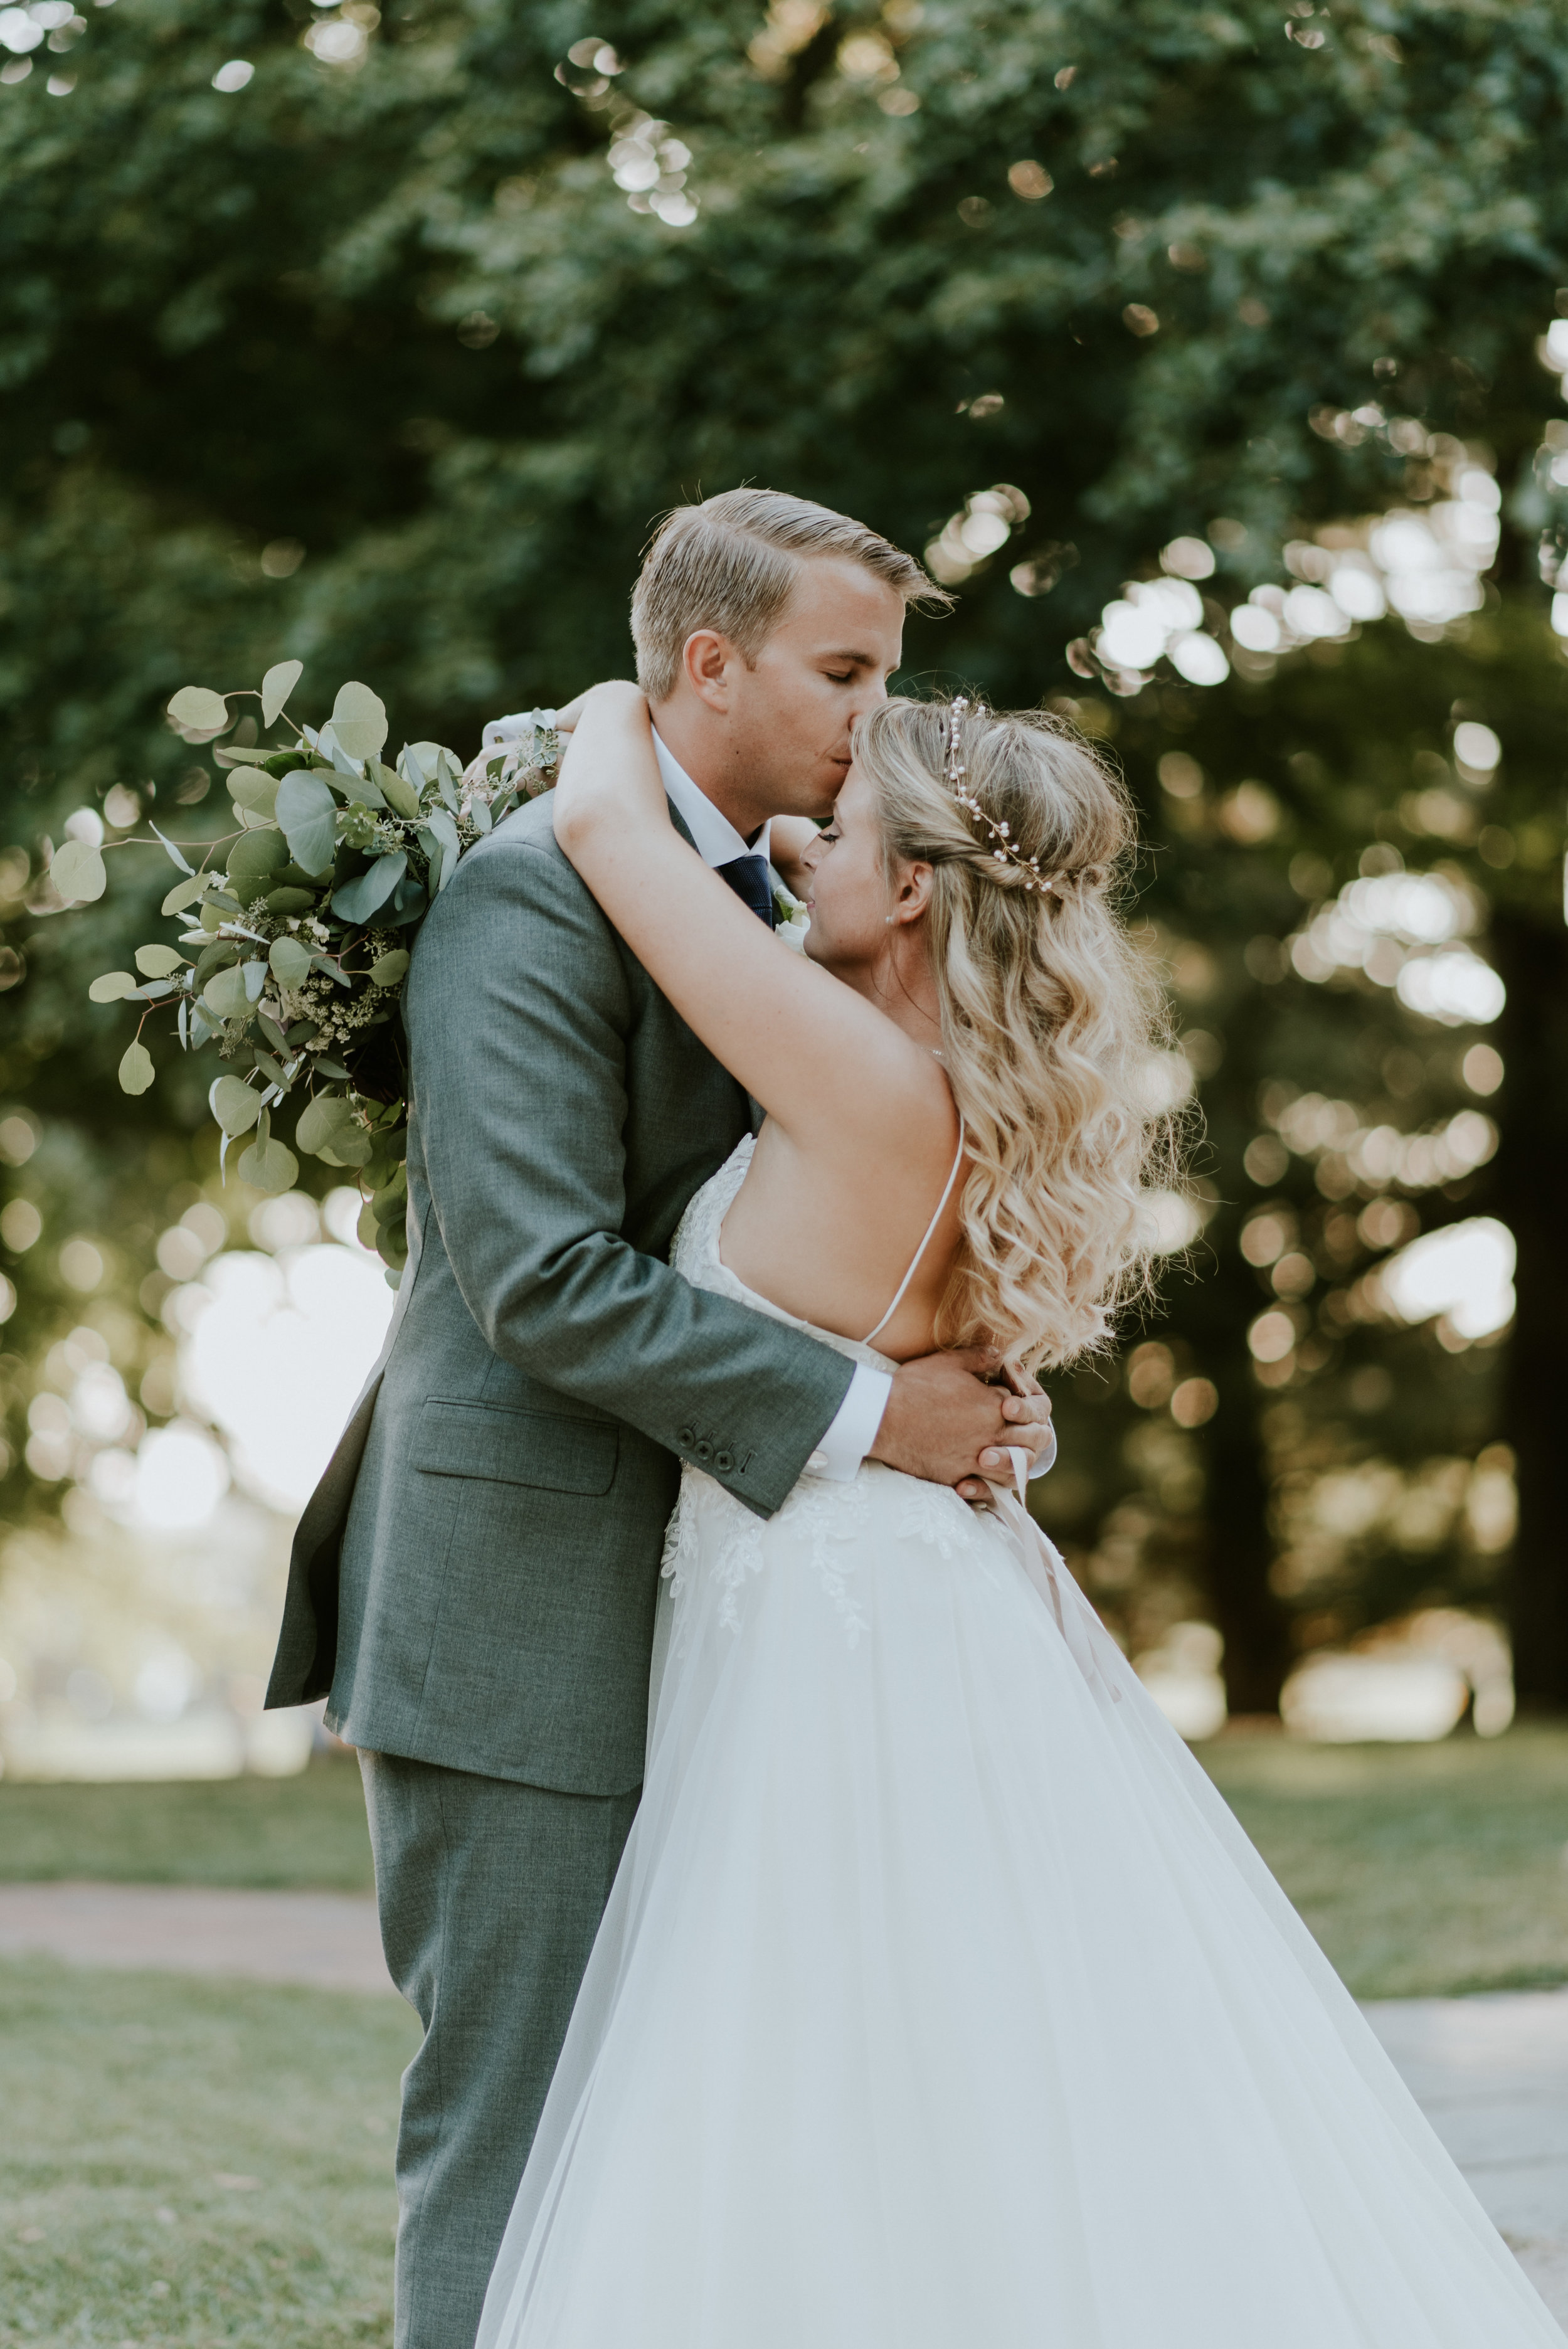 Rustic Oyster Themed Eastern Shore Maryland Outdoor Wedding by East Made Event Company Wedding Planner and Bekah Kay Creative893.jpg